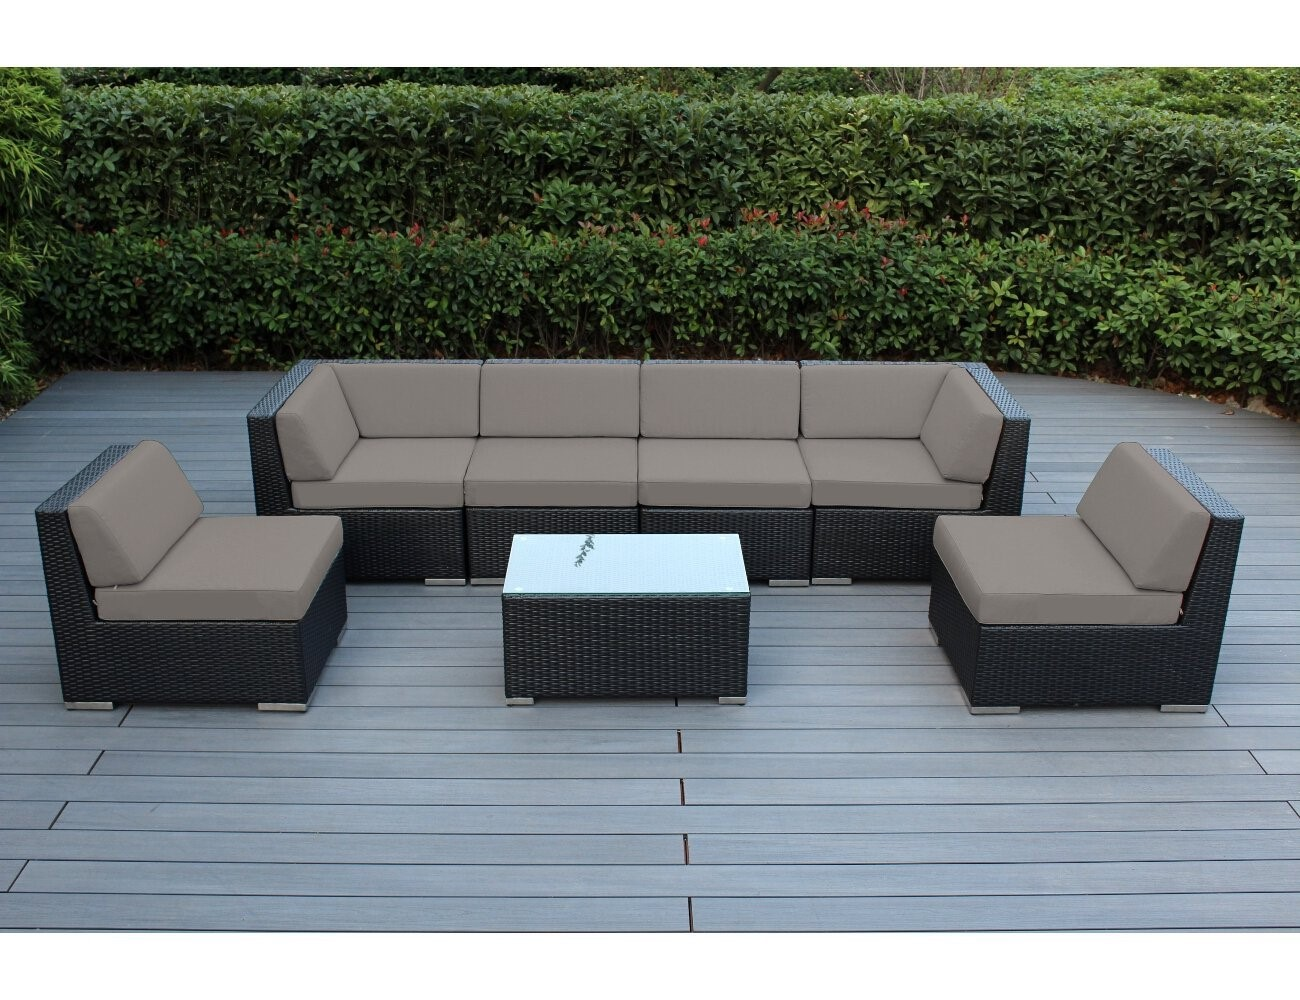 7 Piece Outdoor Wicker Patio Furniture Sectional Conversation Set